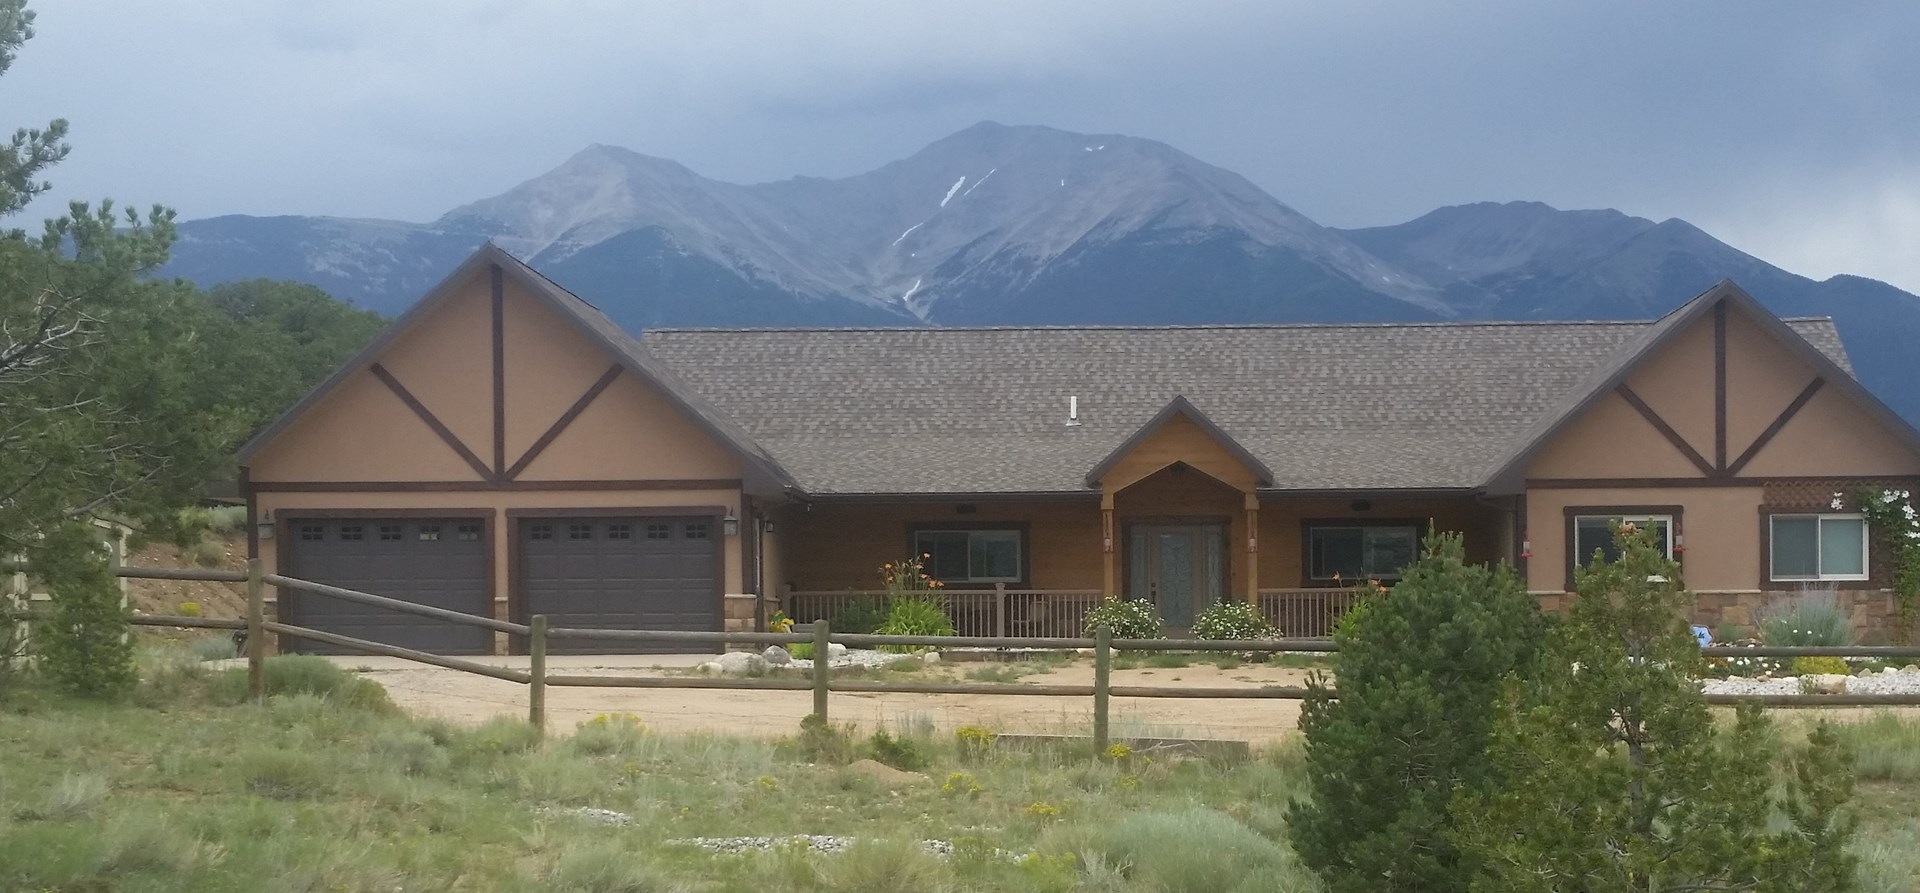 Buena Vista, Colorado Home with Acreage for Sale